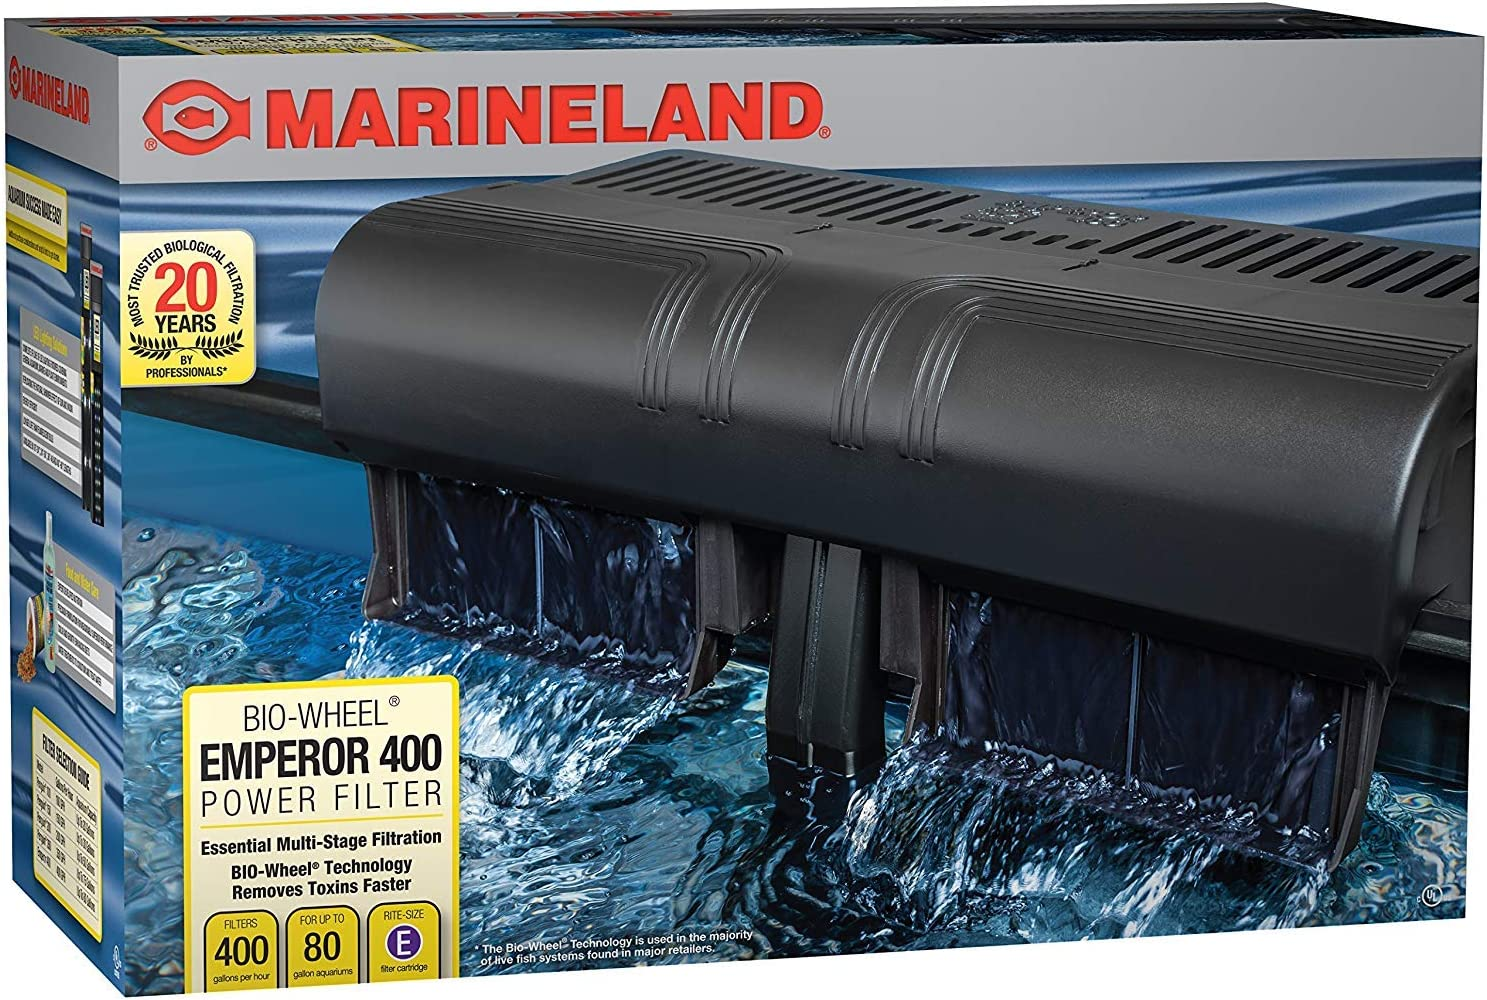 Marineland Emperor Bio-Wheel Power Filter